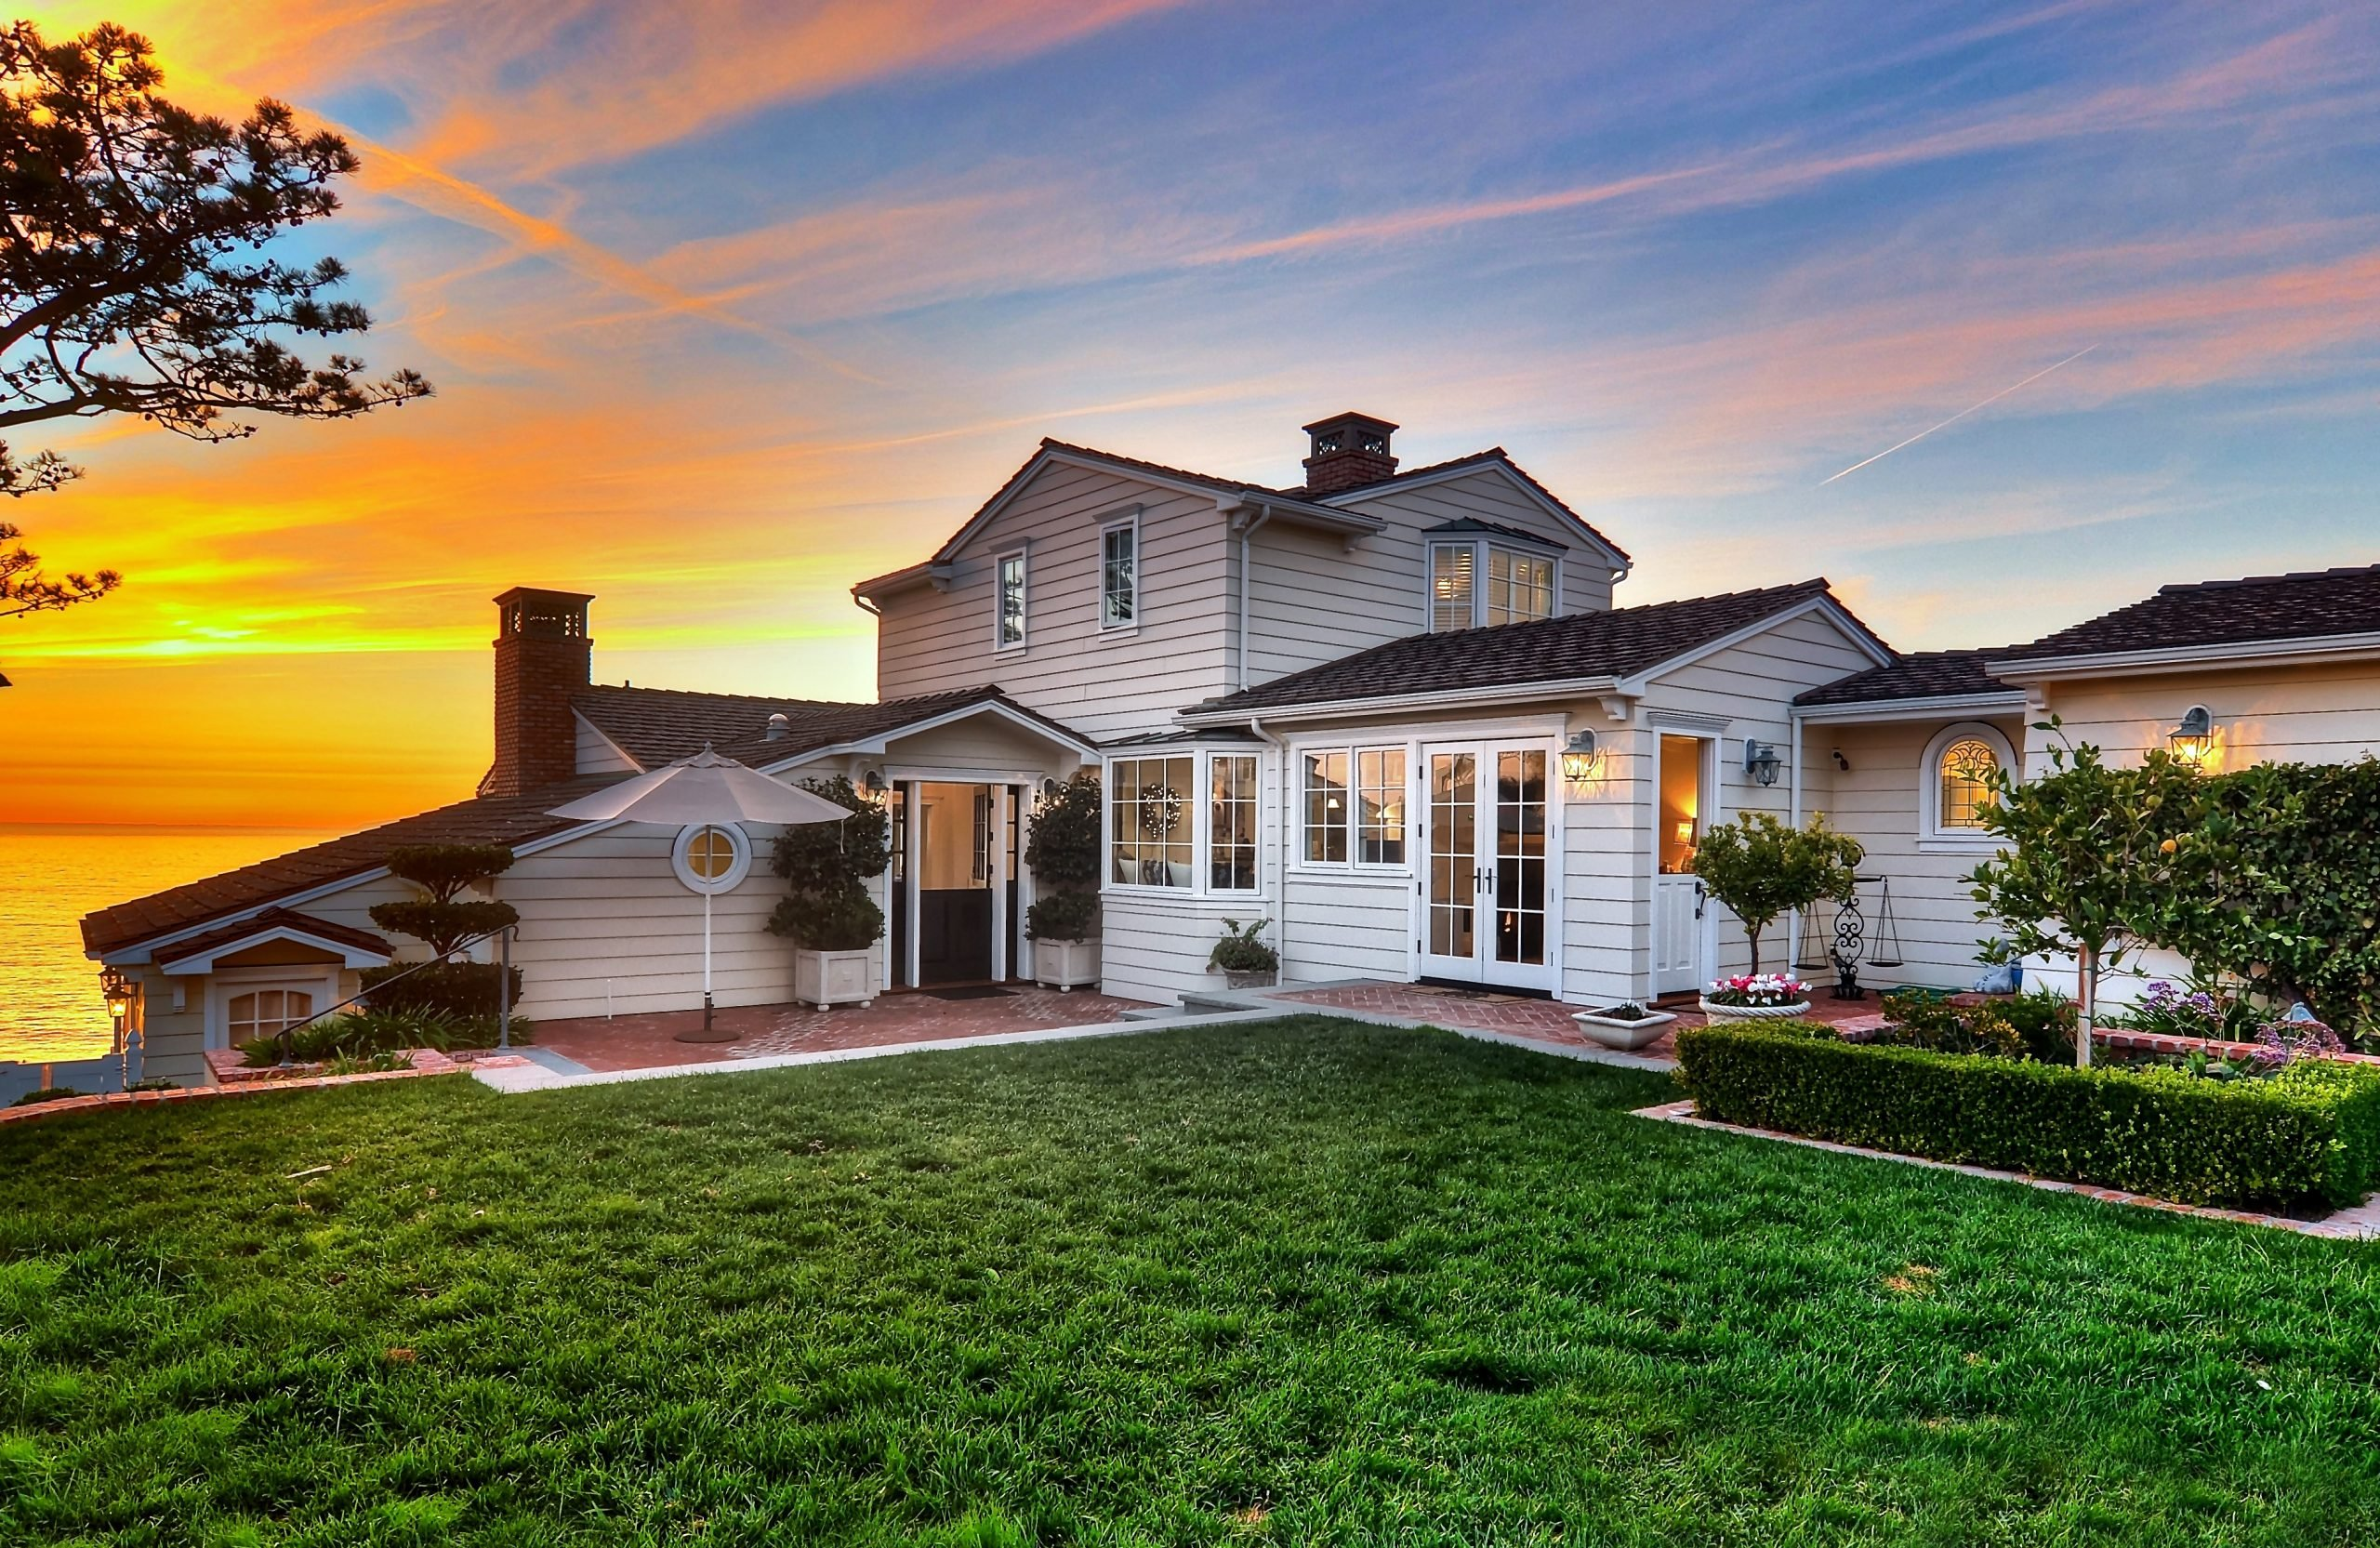 Simple Tips To Invest In A Turkey Real Estate